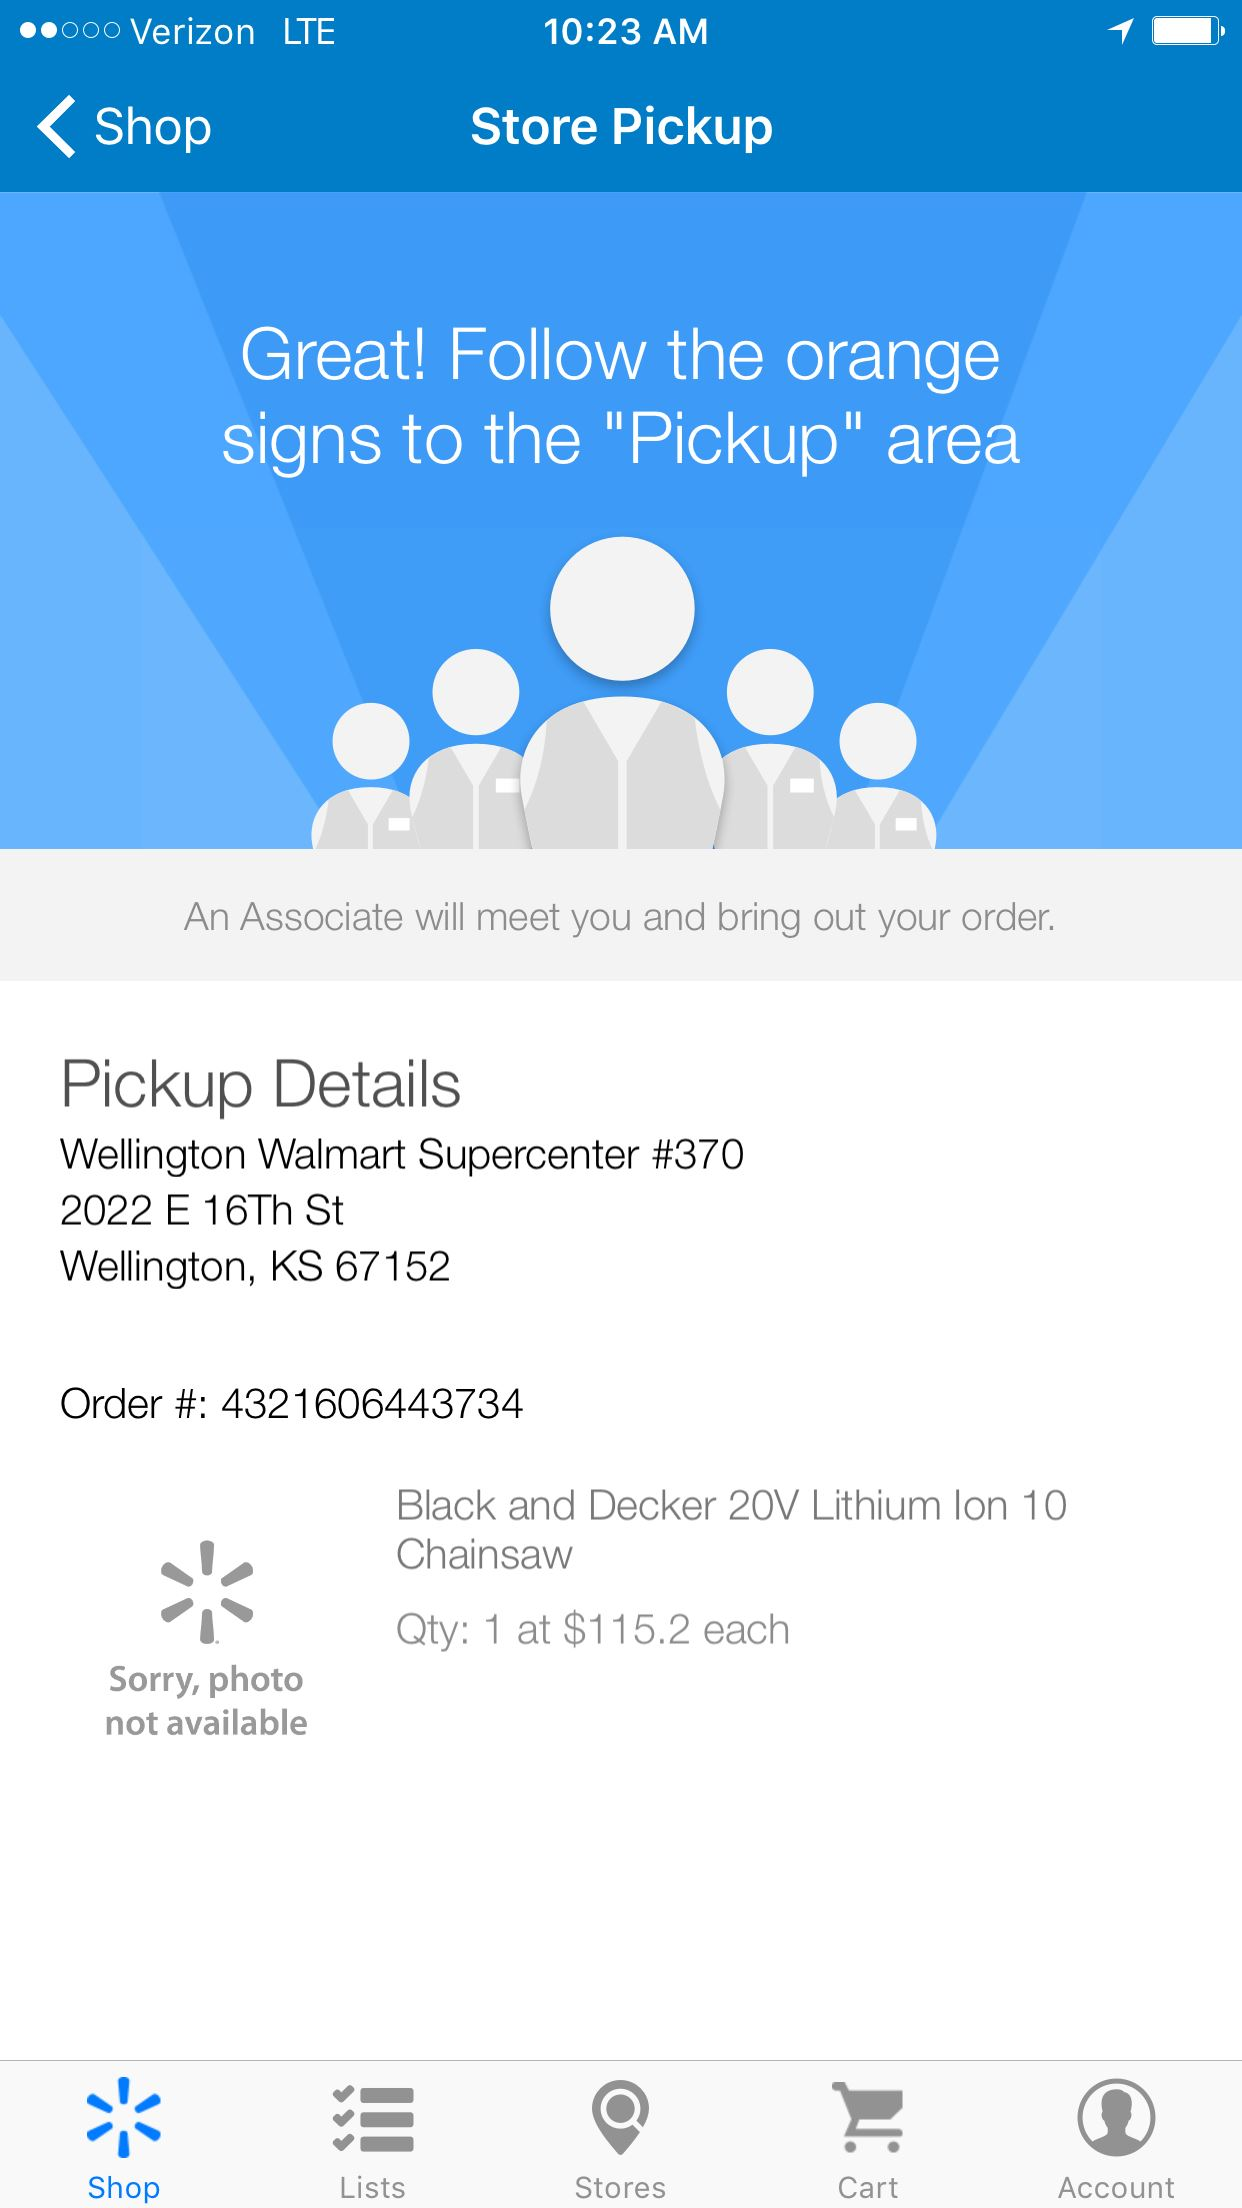 Walmartcom In Store Pickup Today Review Grunch - How to create a invoice walmart online shopping store pickup